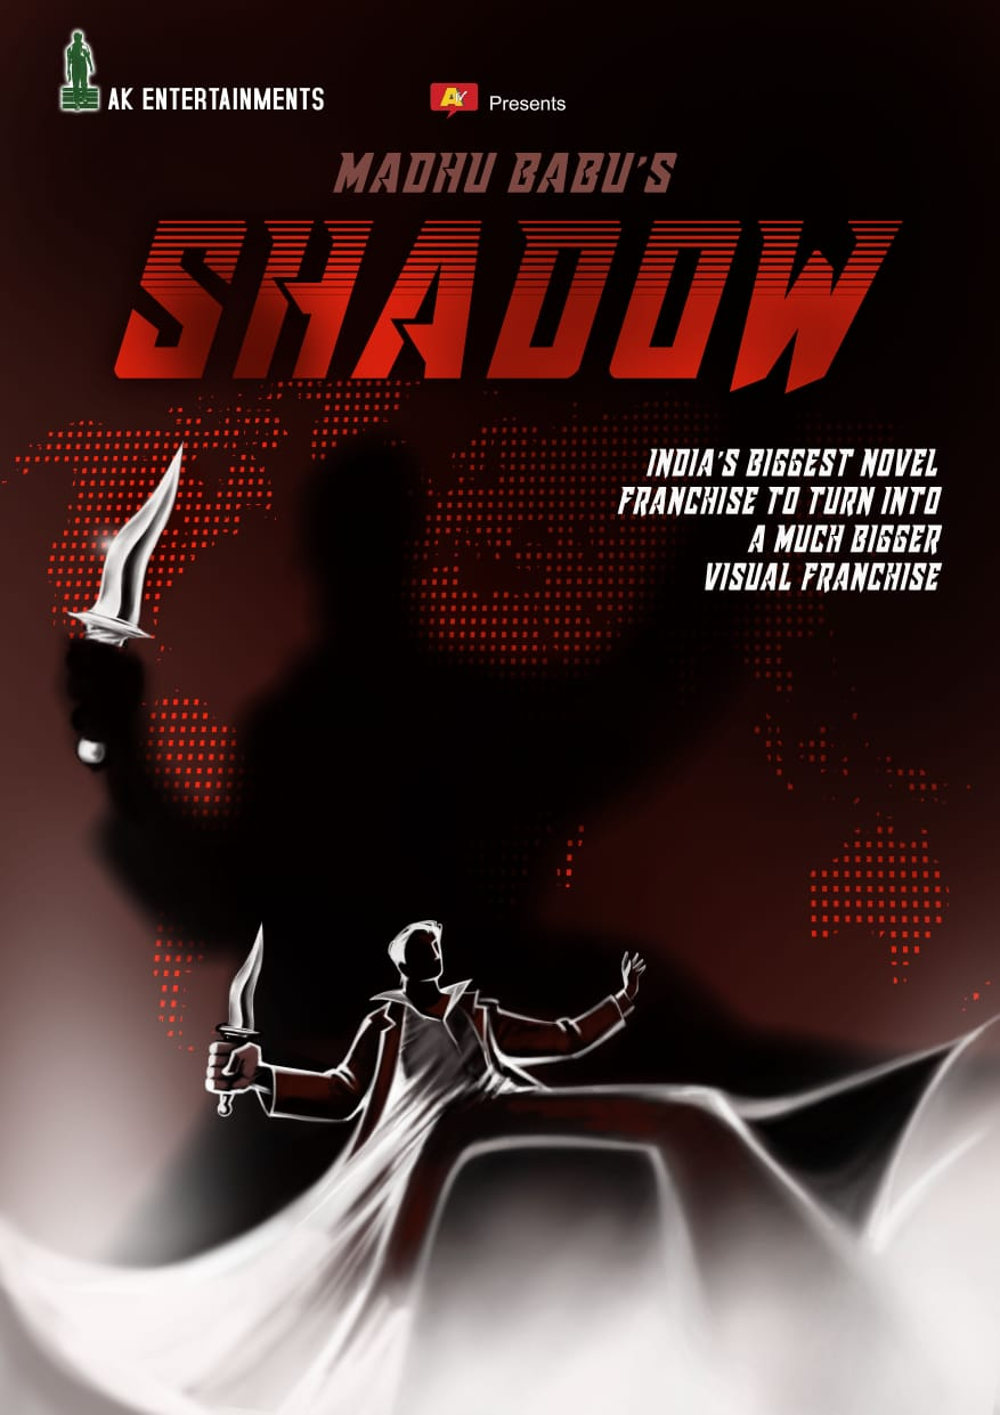 AK Entertainments making his OTT debut with Shadow series